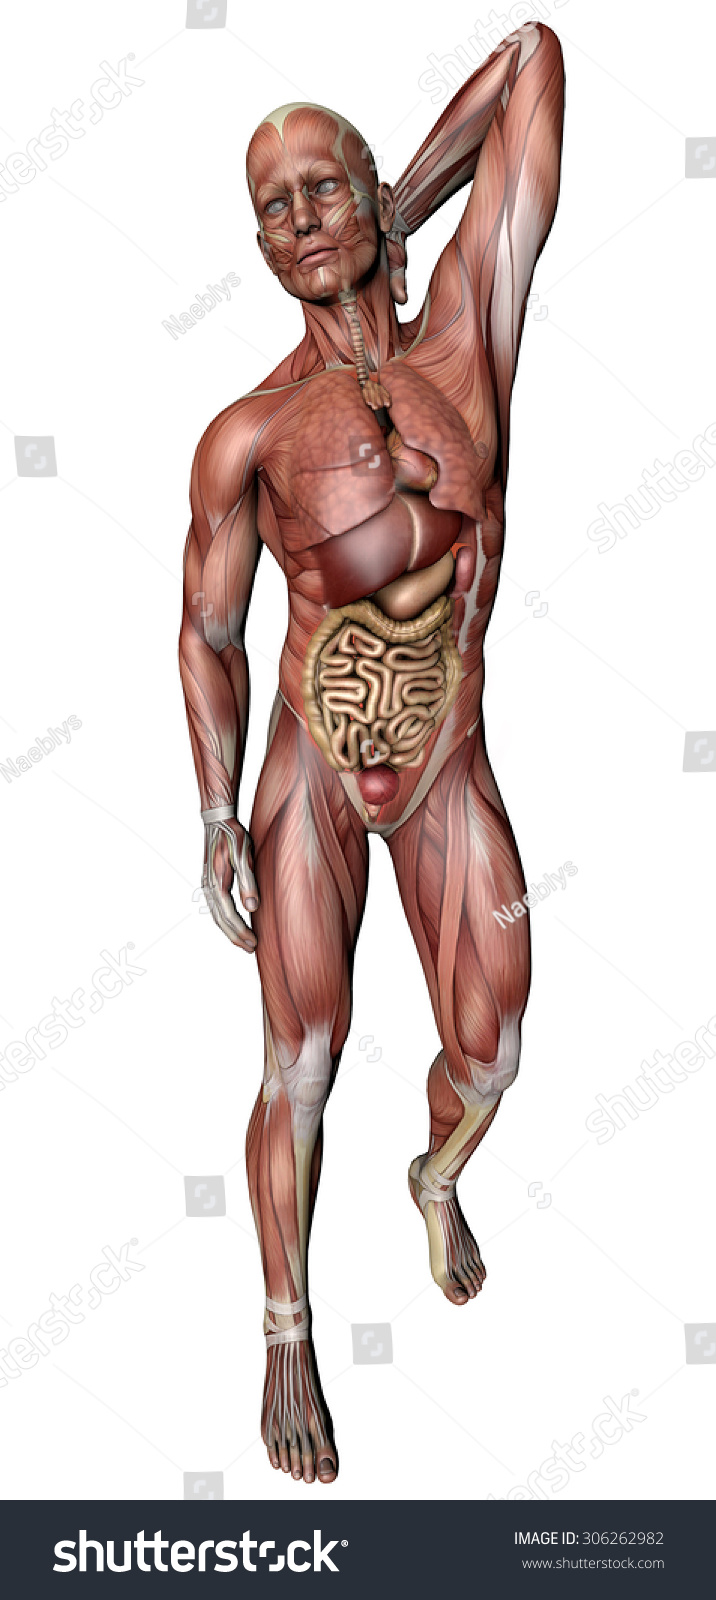 Royalty Free Stock Illustration of Man Anatomy Body Muscles Skeleton ...